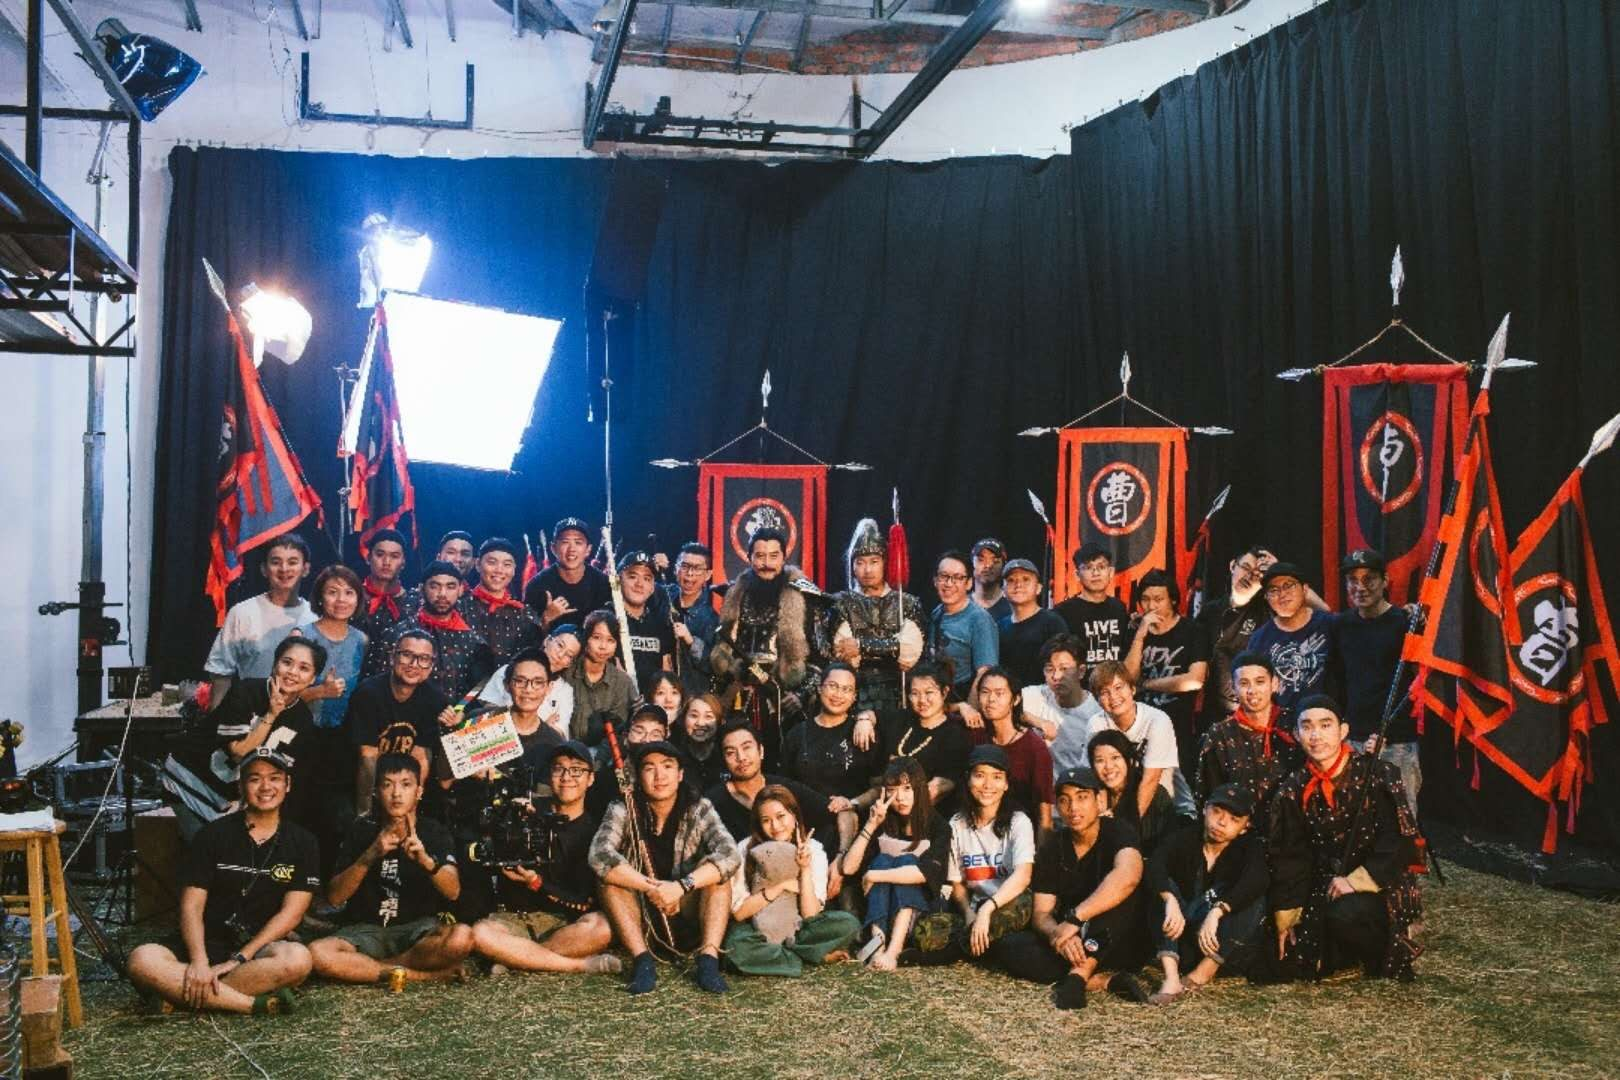 Cinemates Pictures Sdn Bhd